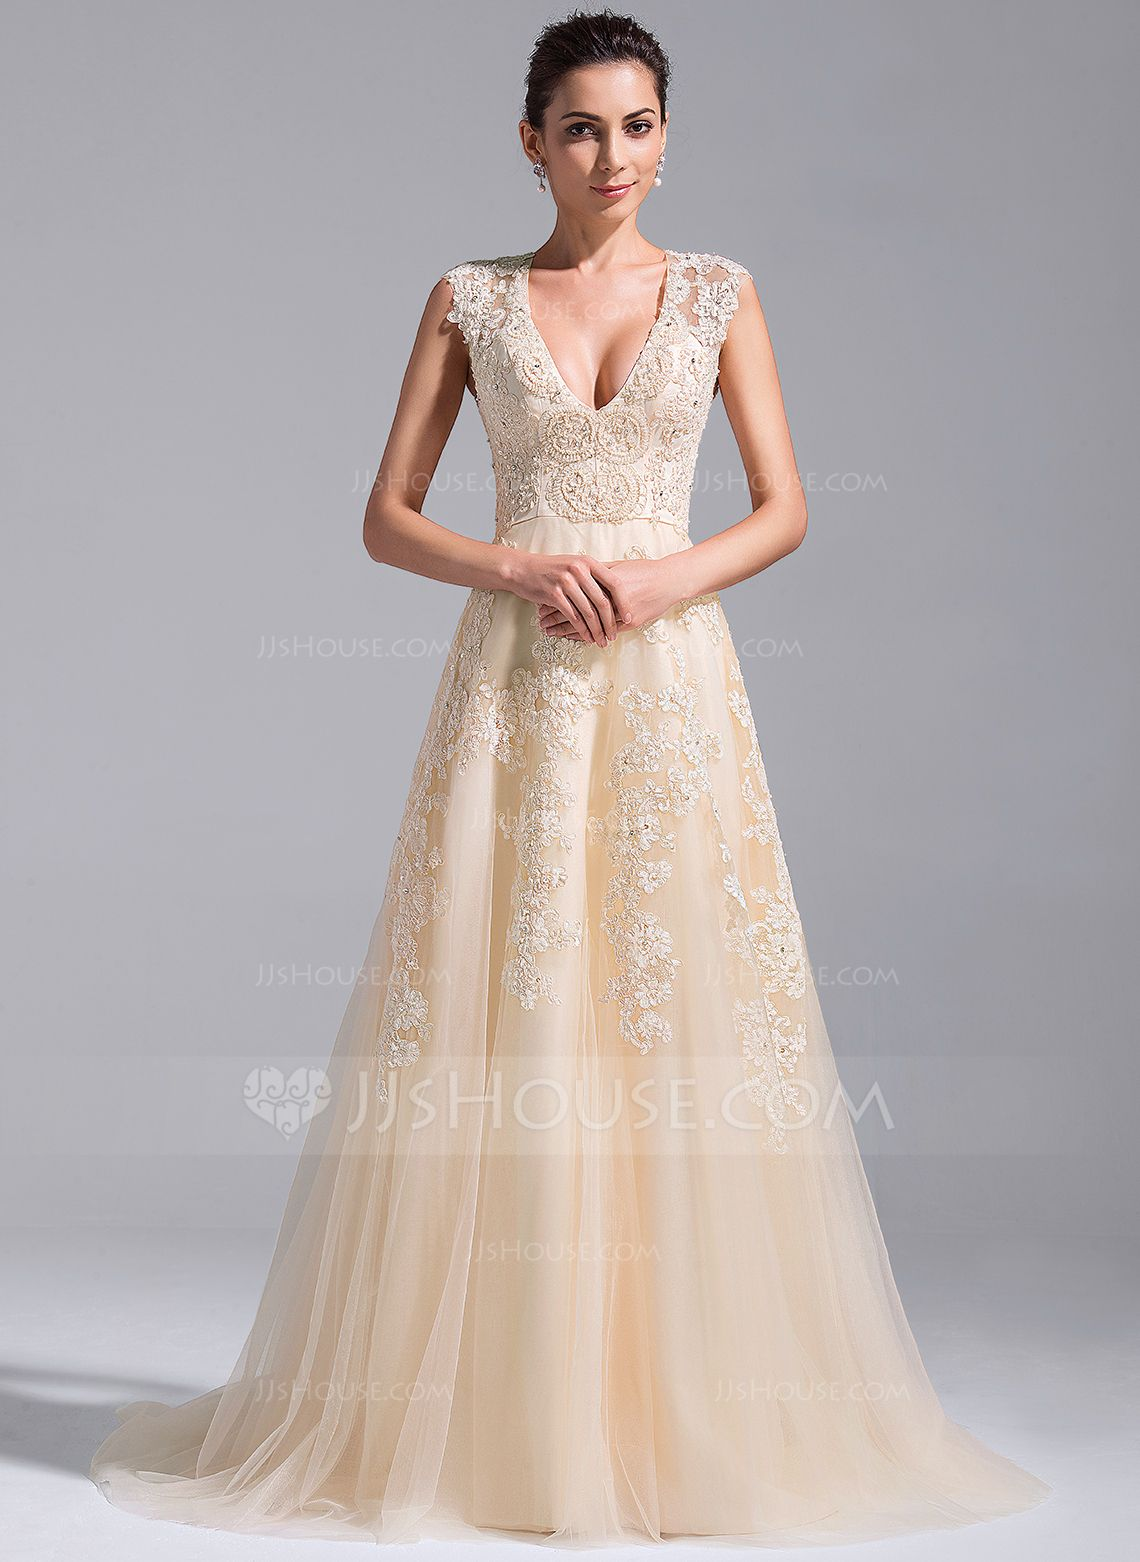 Alineprincess vneck court train tulle wedding dress with beading